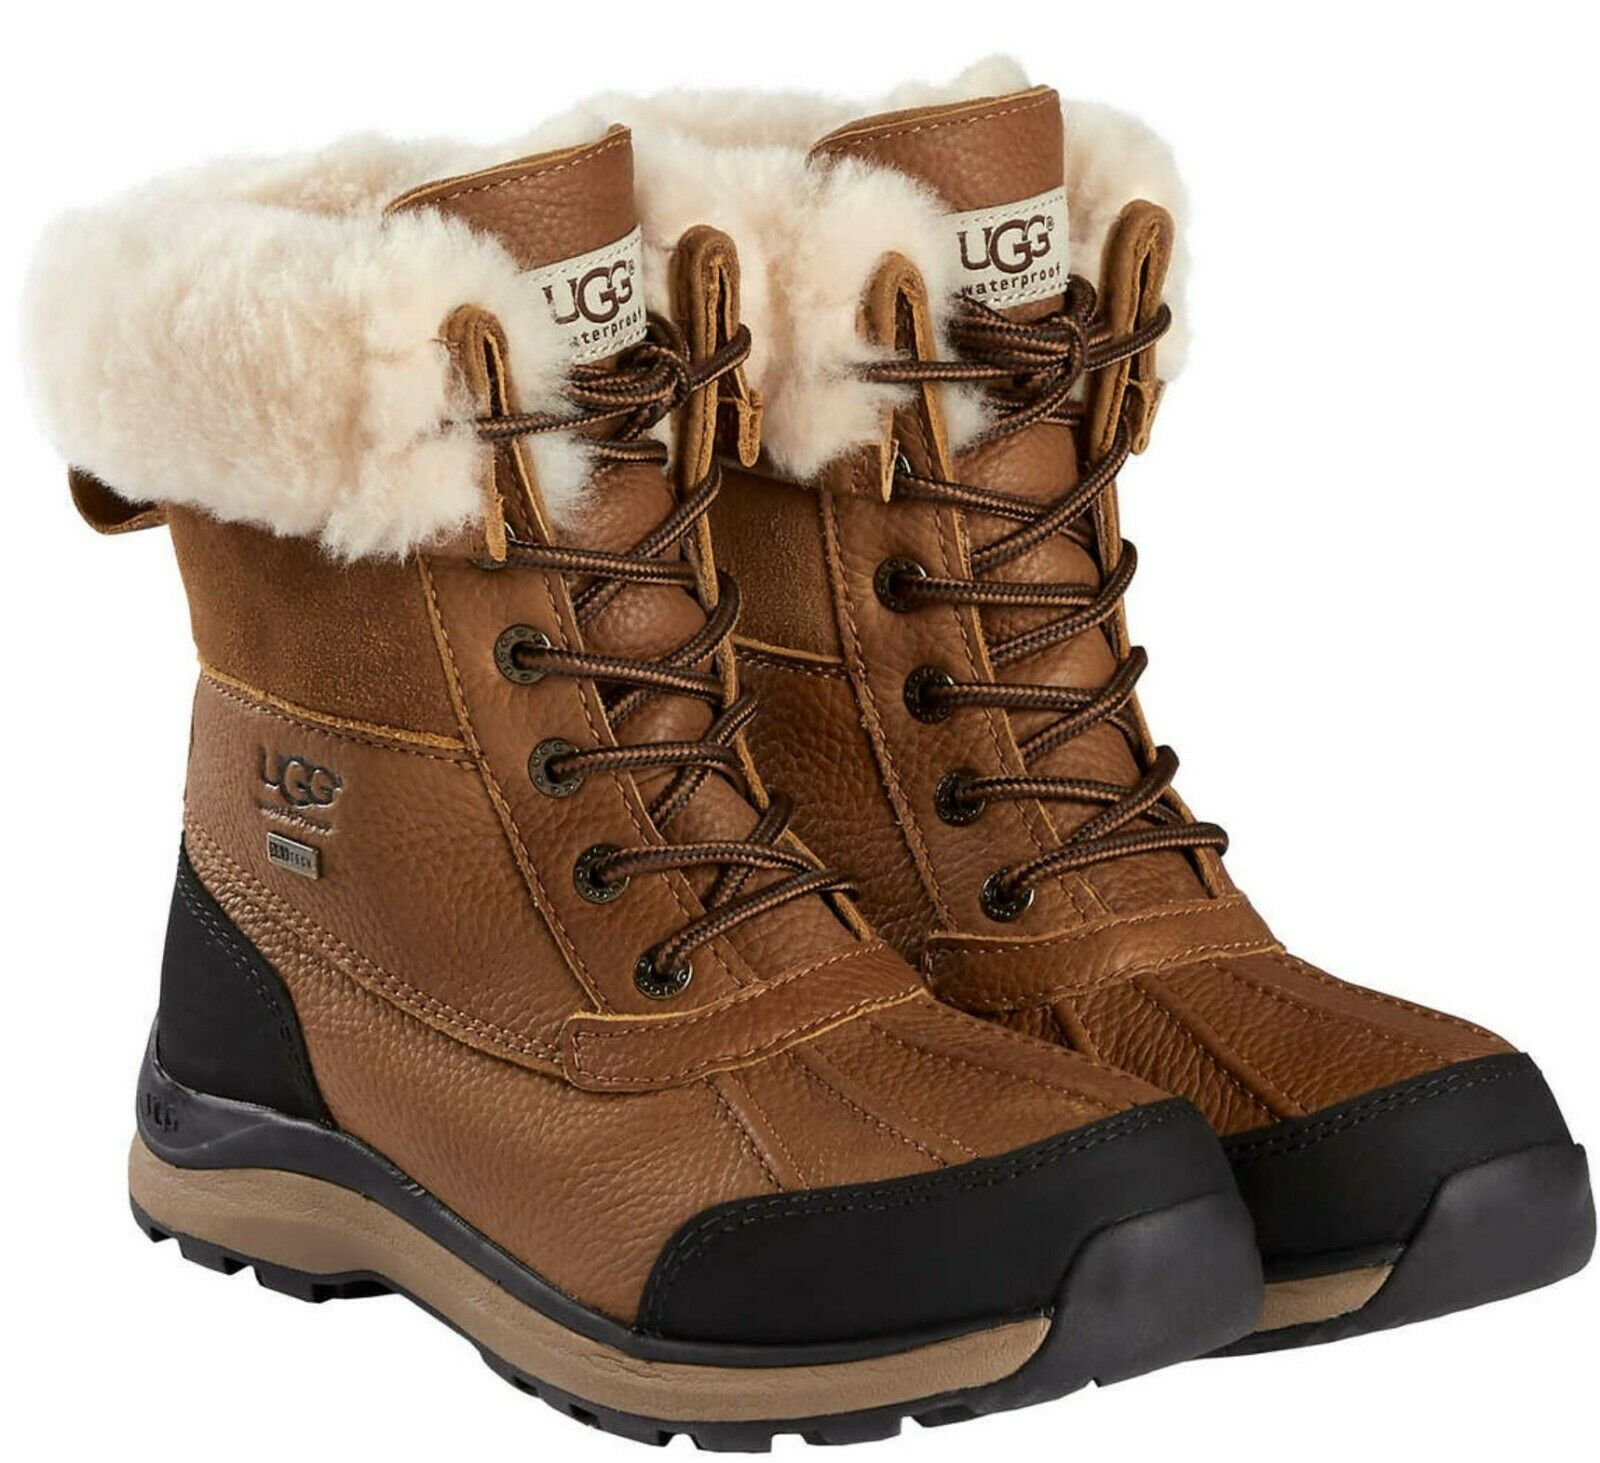 *NEW* UGG Adirondack III Waterproof Women's Snow Boots